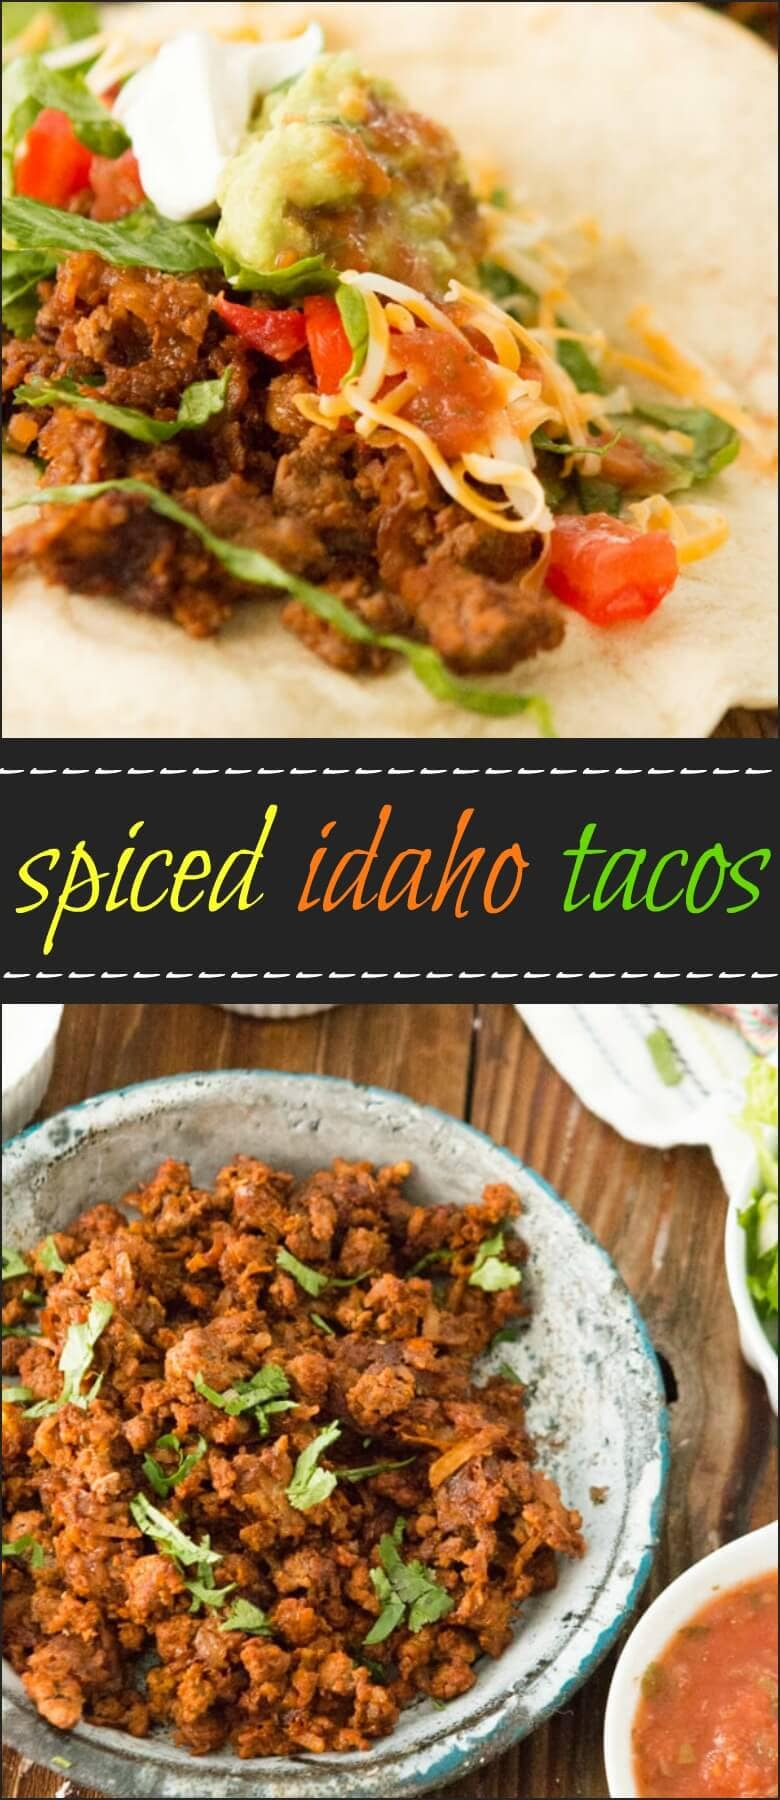 Spiced Idaho Tacos, you have to try it to get the secret ohsweetbasil.com